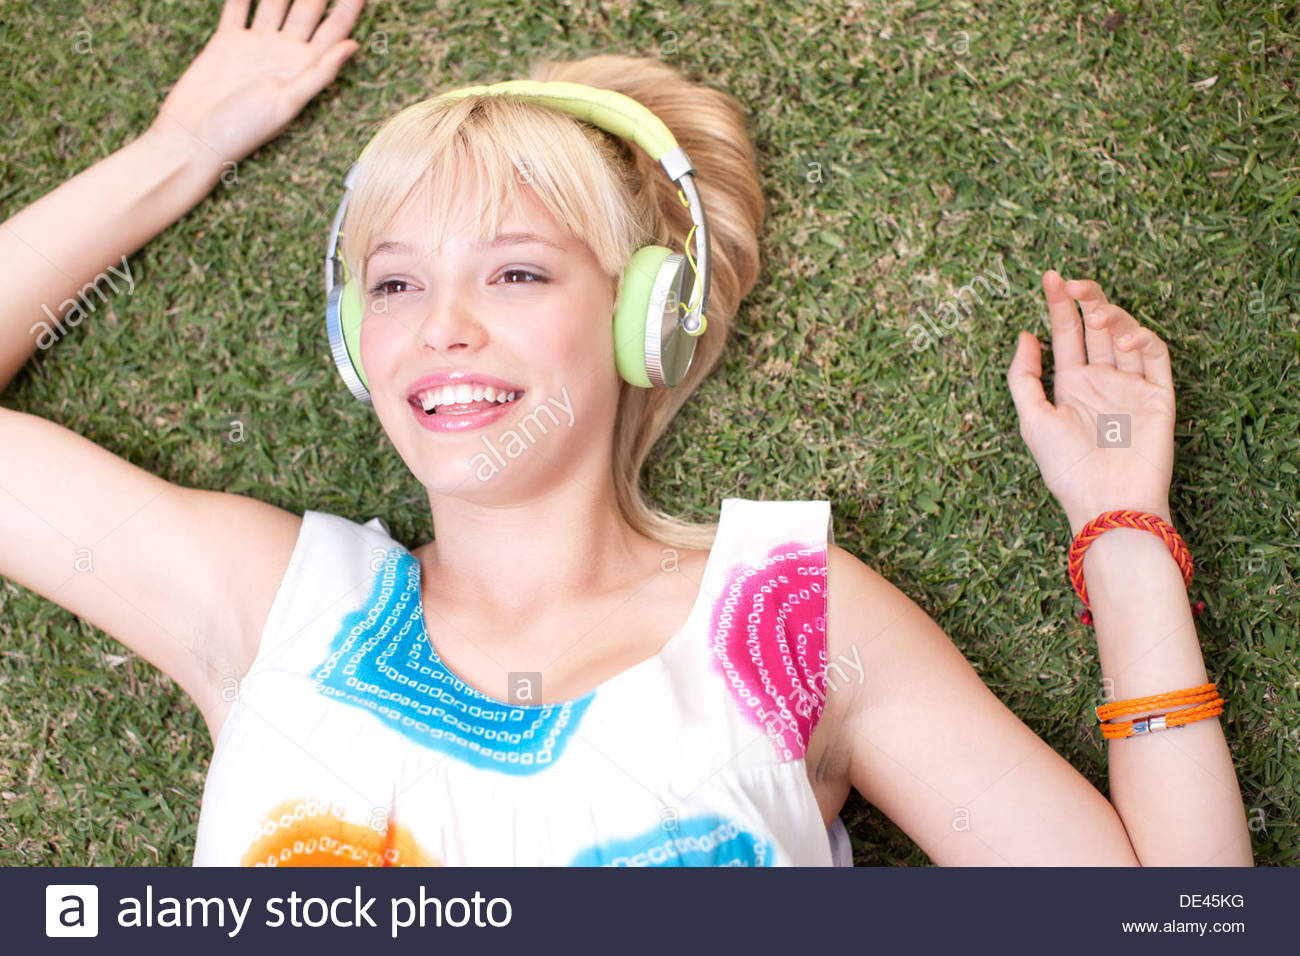 Woman laying on grass listening to headphones Photo Stock